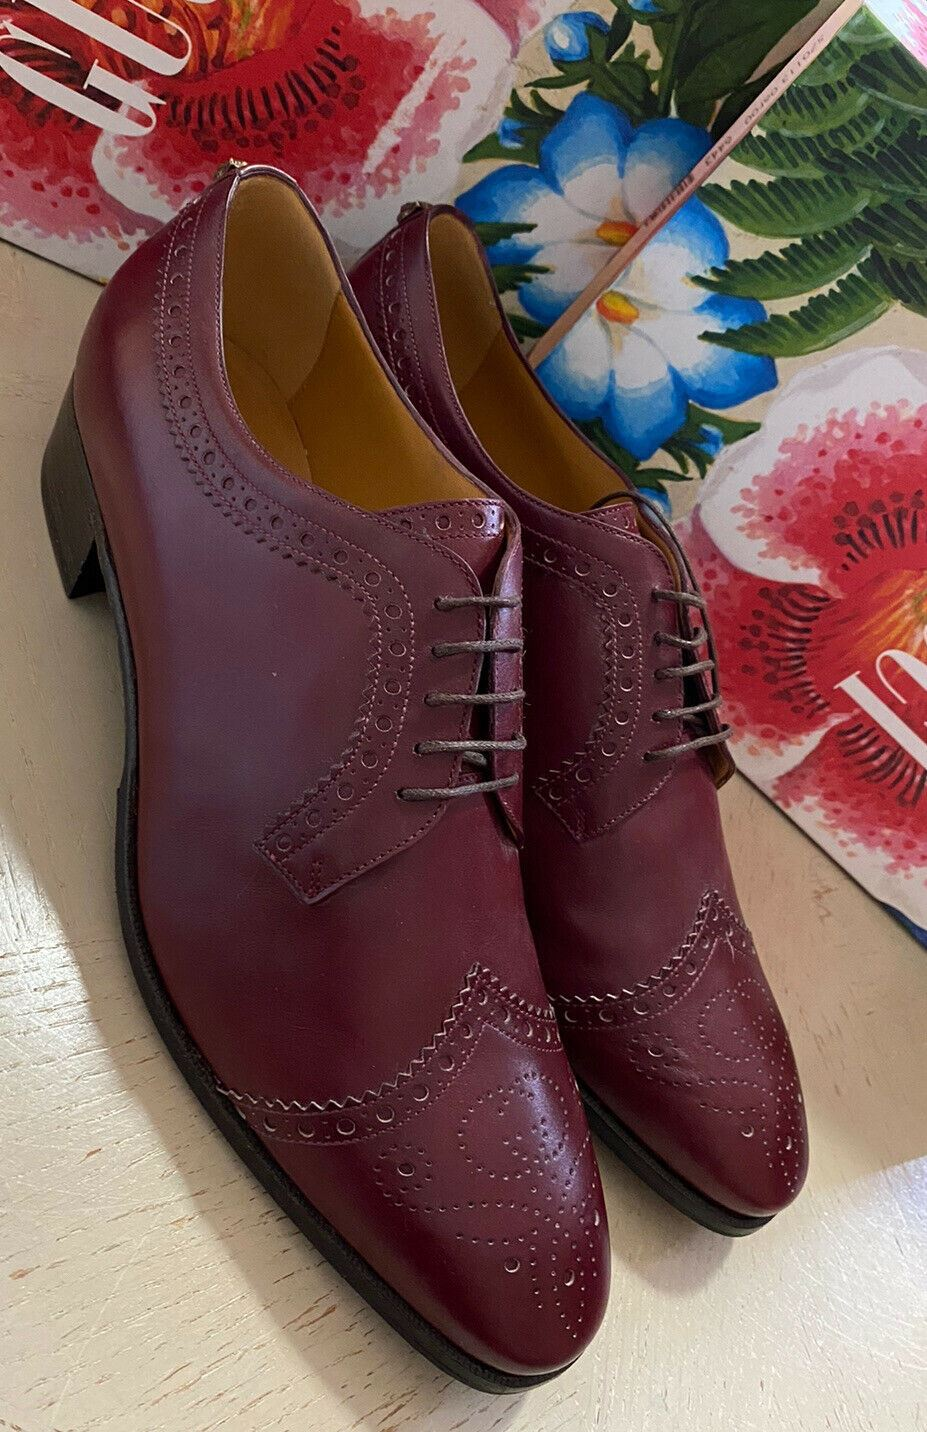 New $980 Gucci Mens Oxford Shoes Burgundy 9.5 US ( 8.5 UK ) Italy